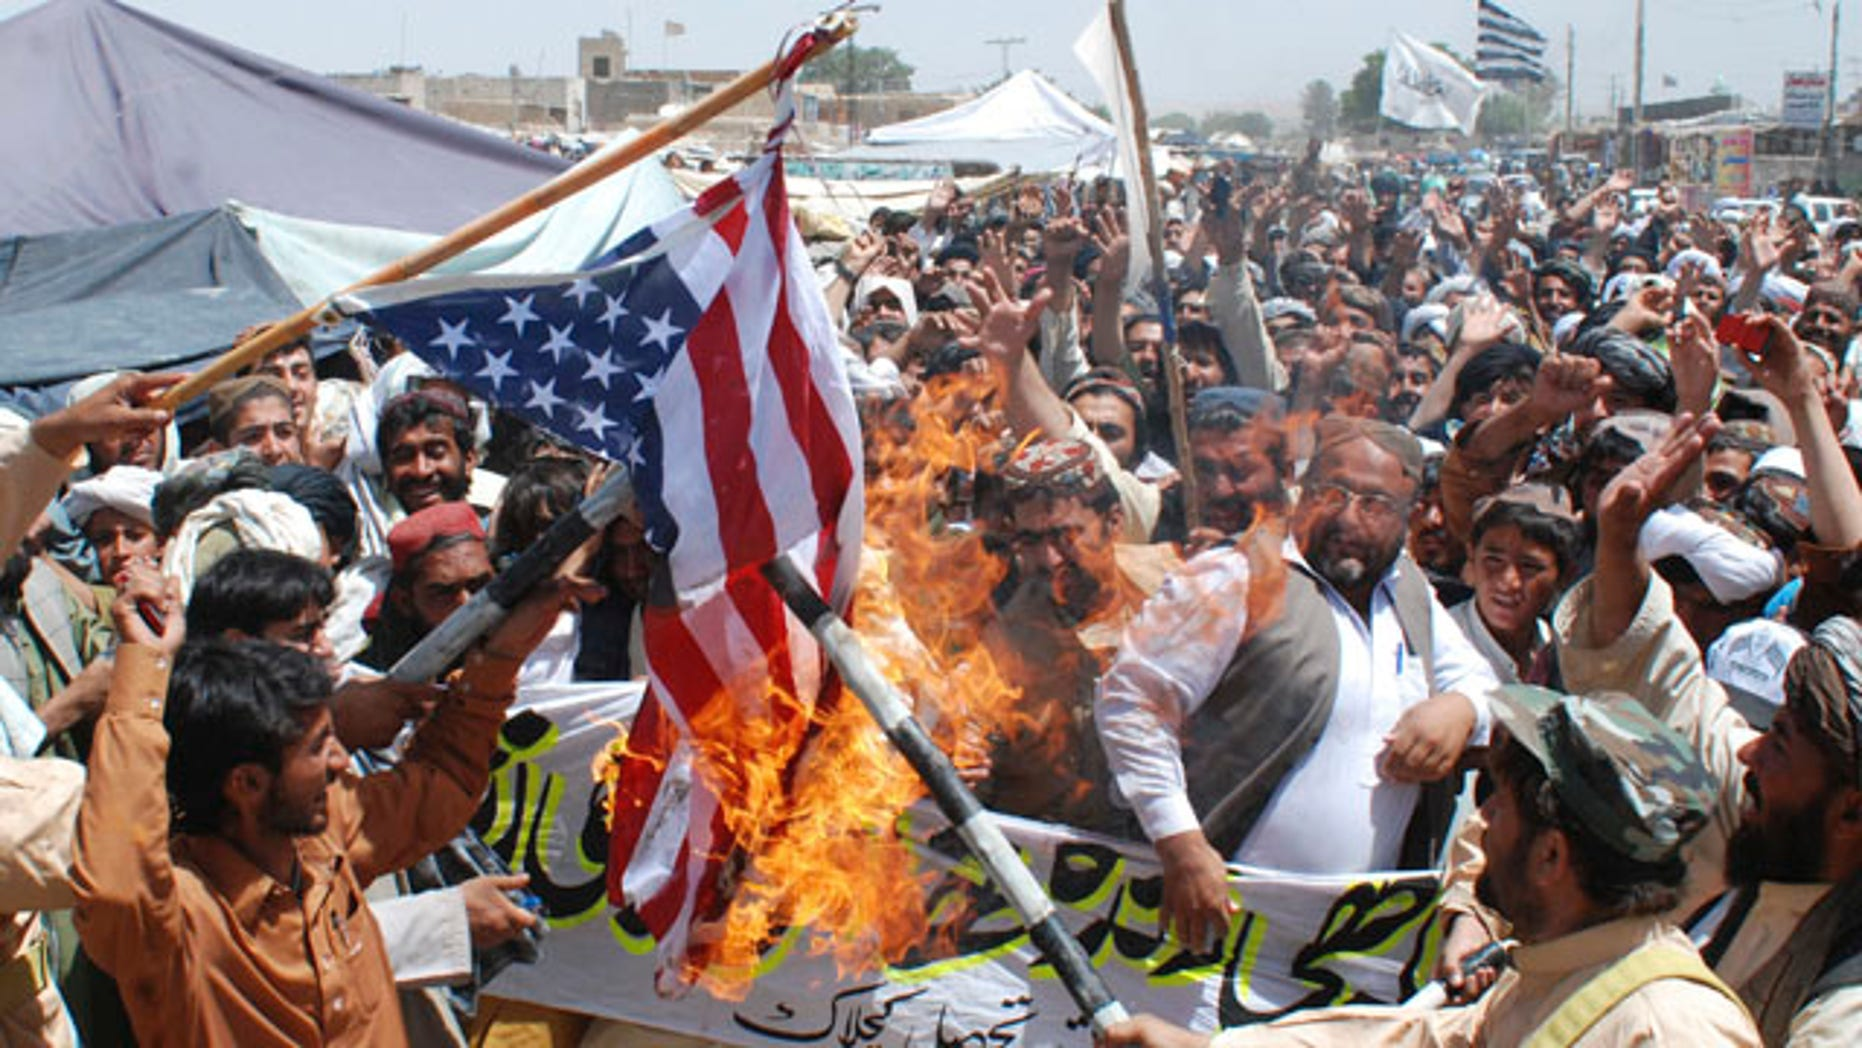 May 6: Supporters of Pakistani religious party Jamiat Ulema-e-Islam burn representation of a U. S. flag during a rally to condemn the killing of Al Qaeda leader Usama bin Laden, in Kuchlak, Pakistan.